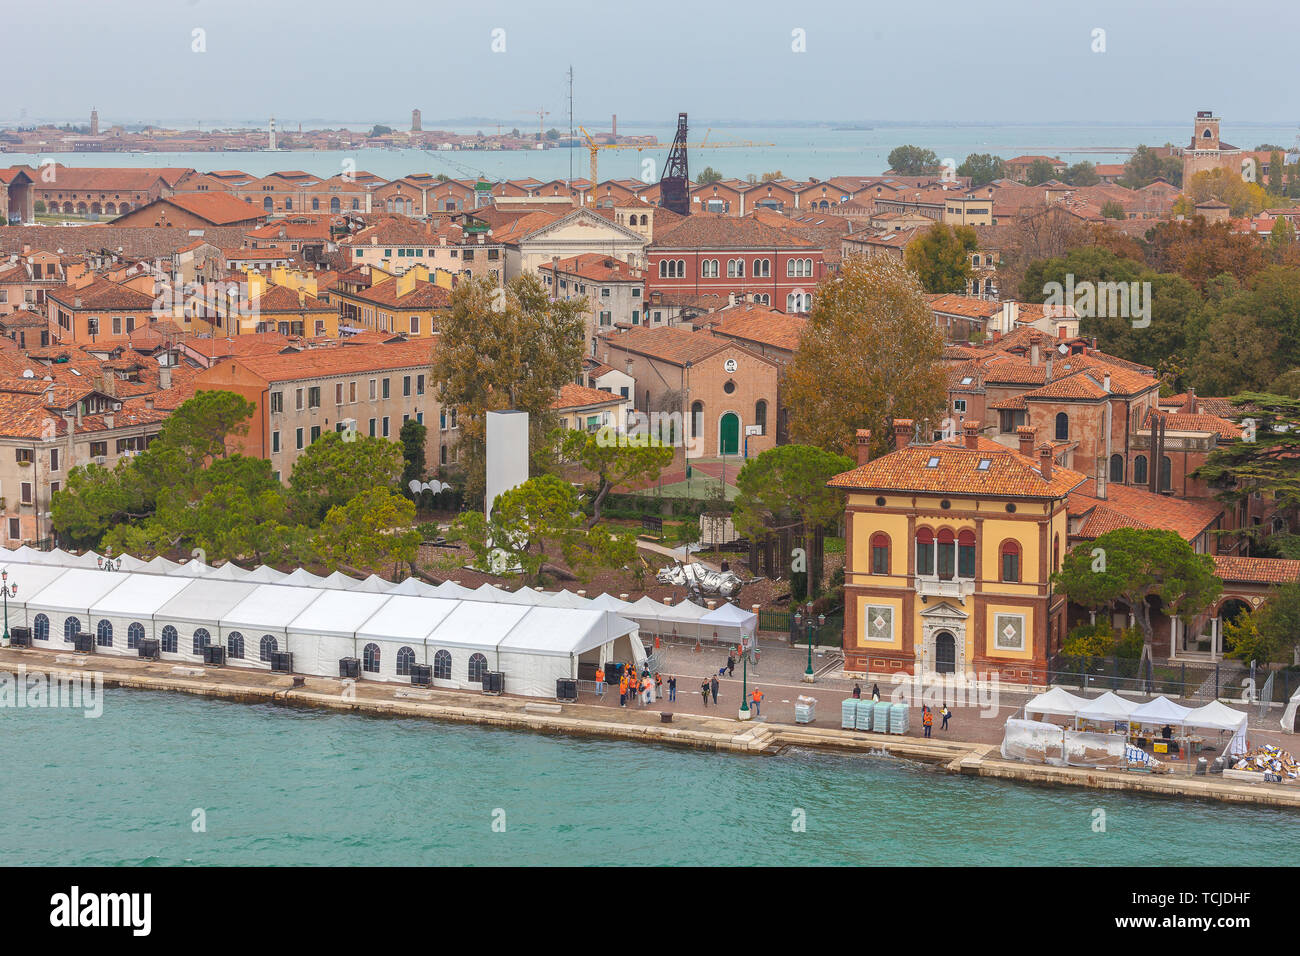 VENICE, ITALY - OCTOBER 27 2018: Aerial view of the arrival area of the Venice marathon - Stock Image